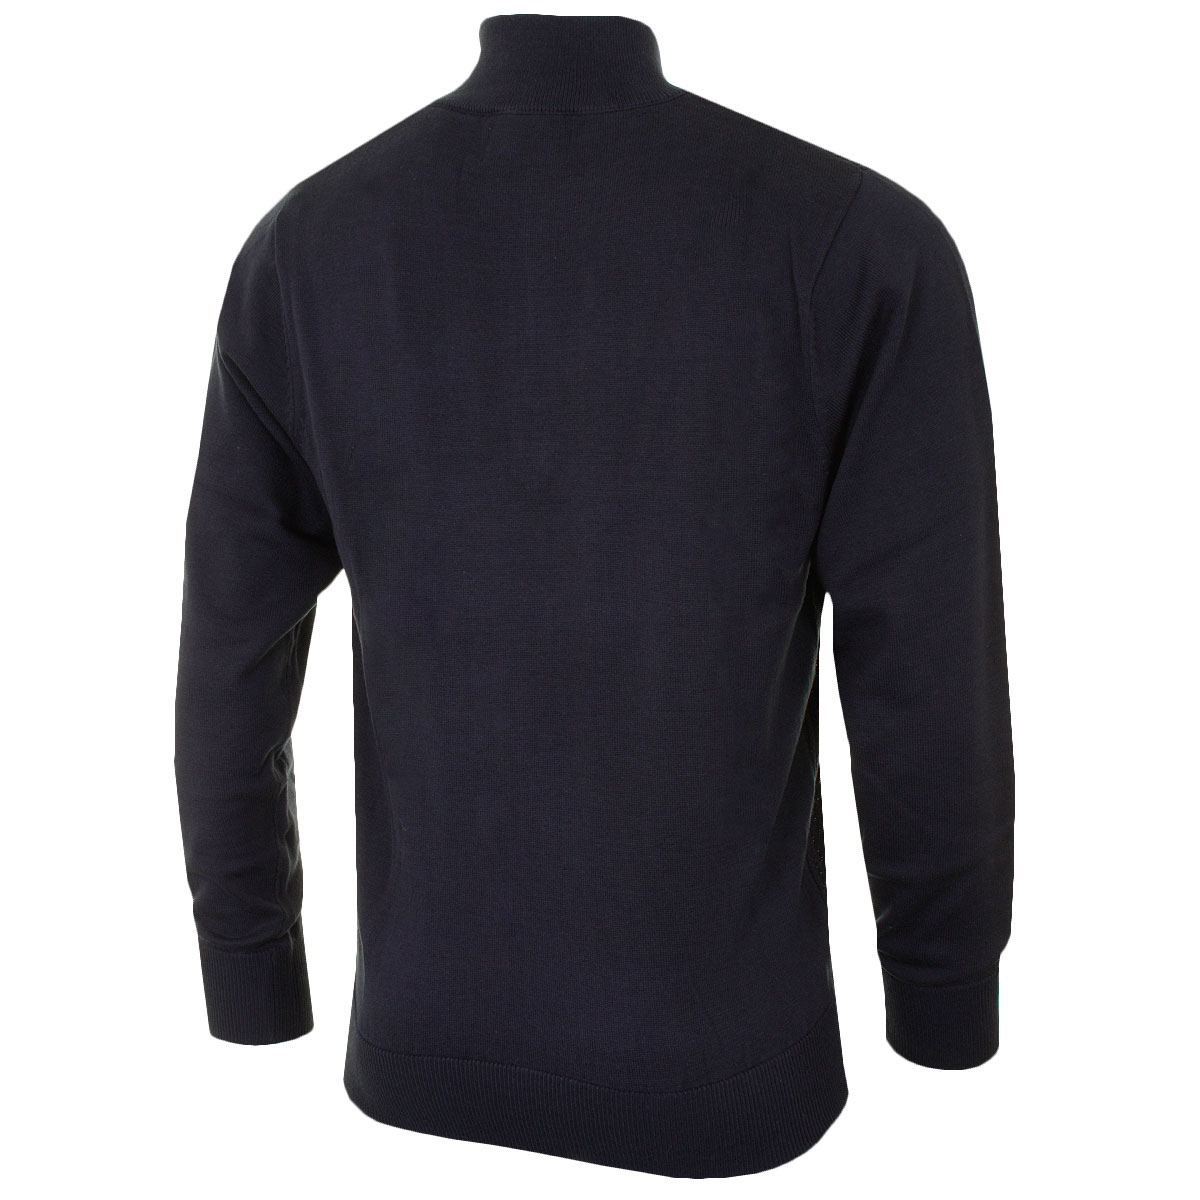 calvin klein golf 2017 mens ck mini cable knit sweater c9211 half zip pullover ebay. Black Bedroom Furniture Sets. Home Design Ideas